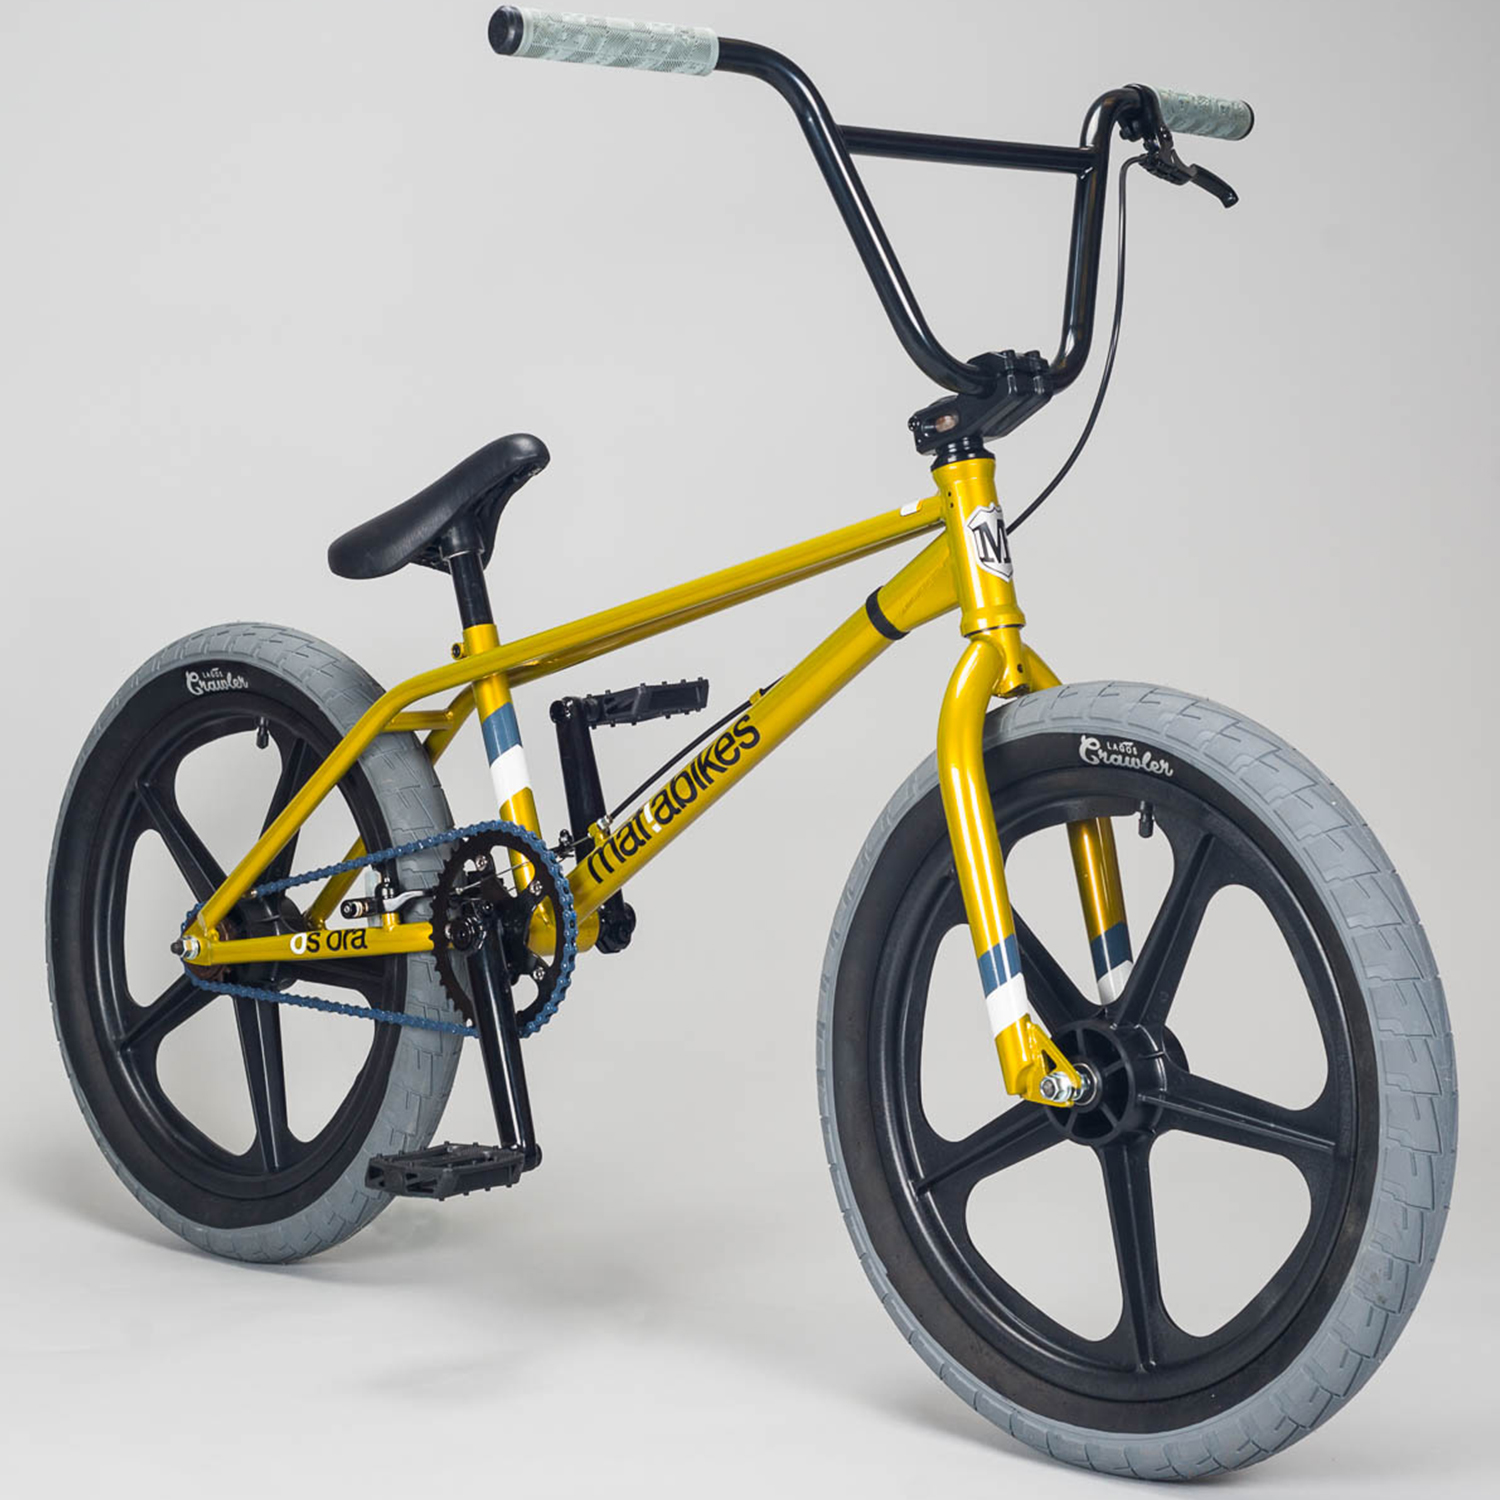 mafiabikes os ora 20 zoll bmx bike skyway old school. Black Bedroom Furniture Sets. Home Design Ideas